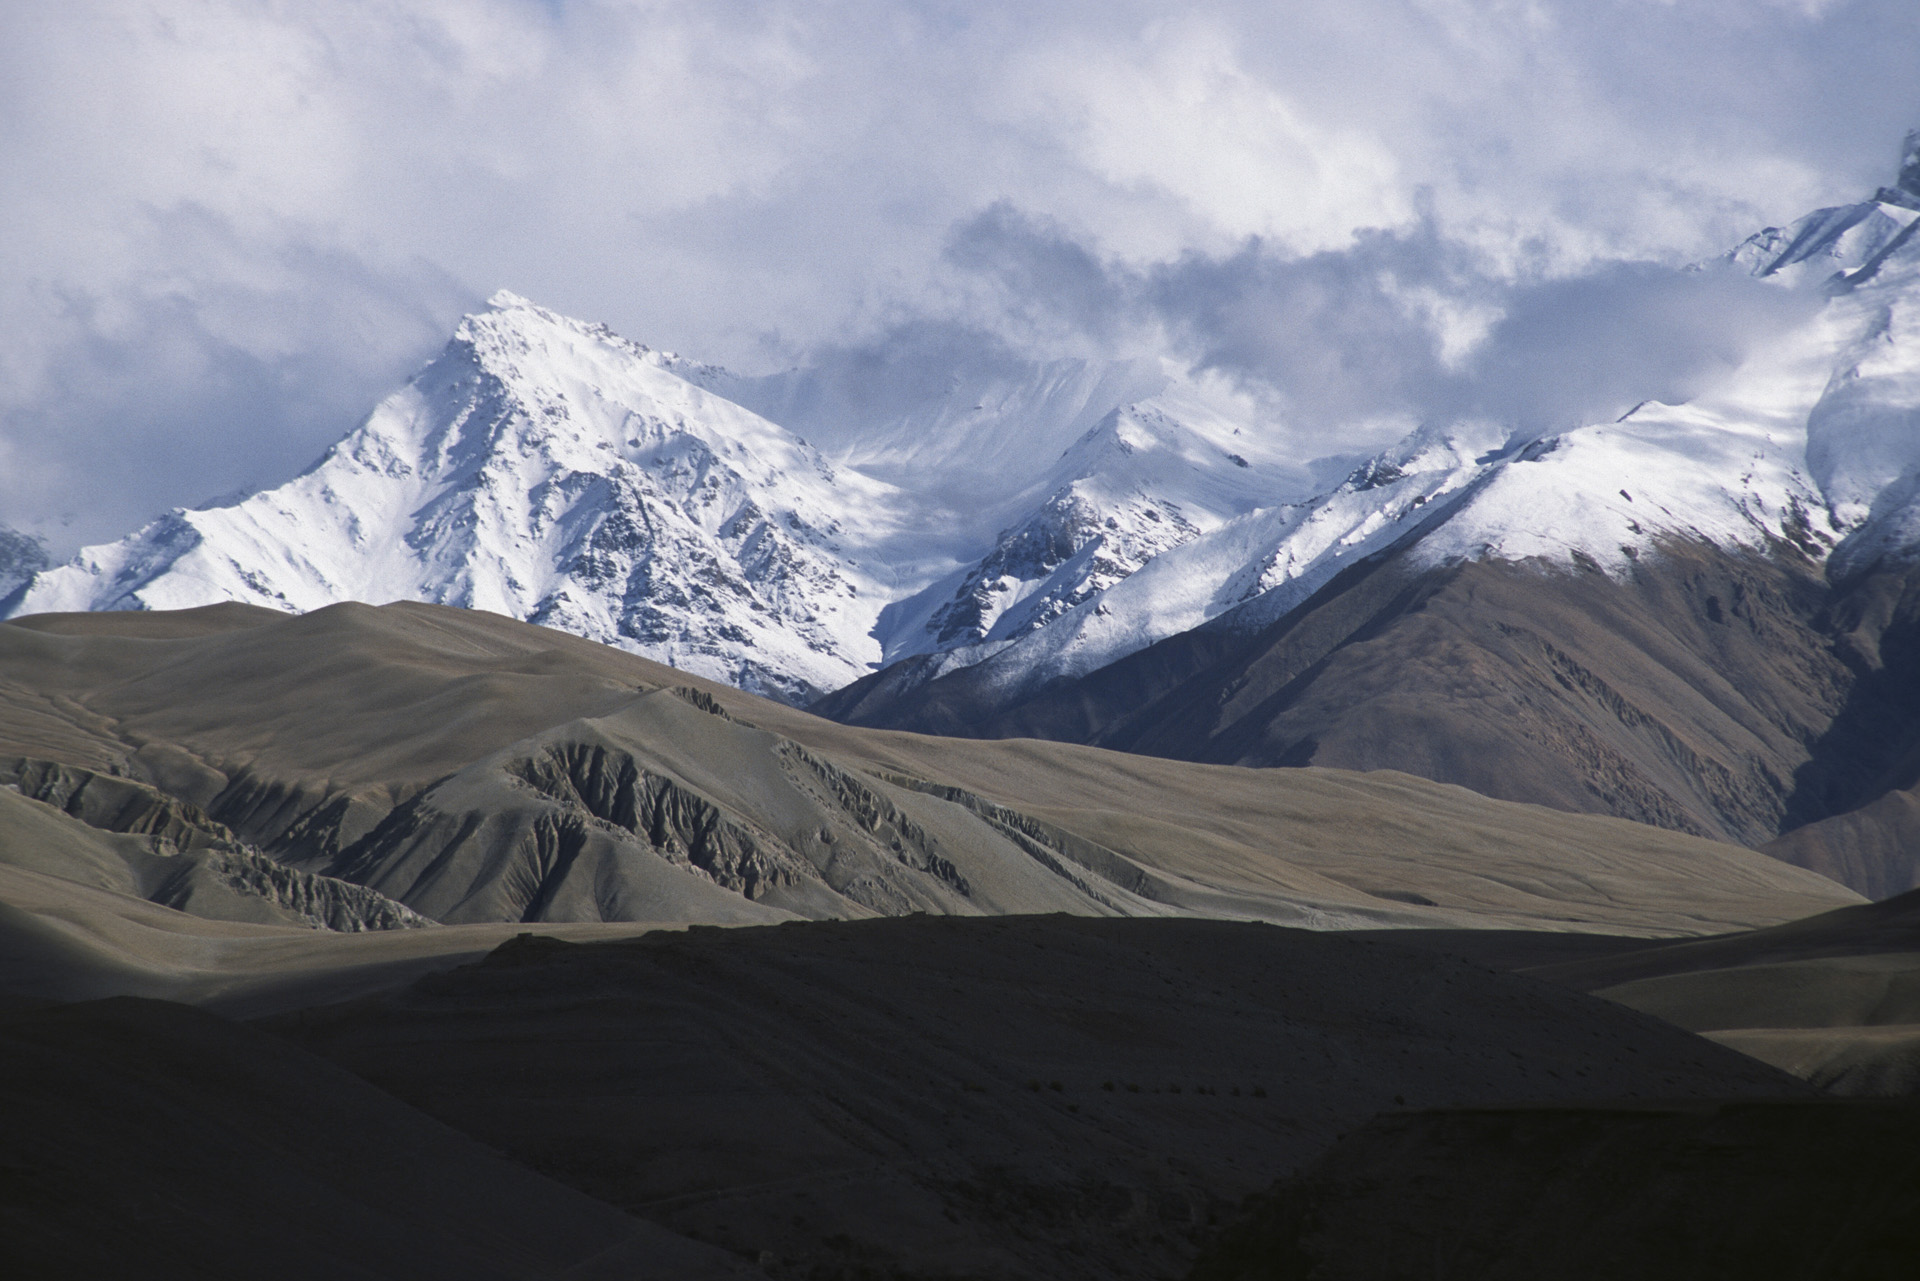 The Himalayas on the border of Nepal, India and China